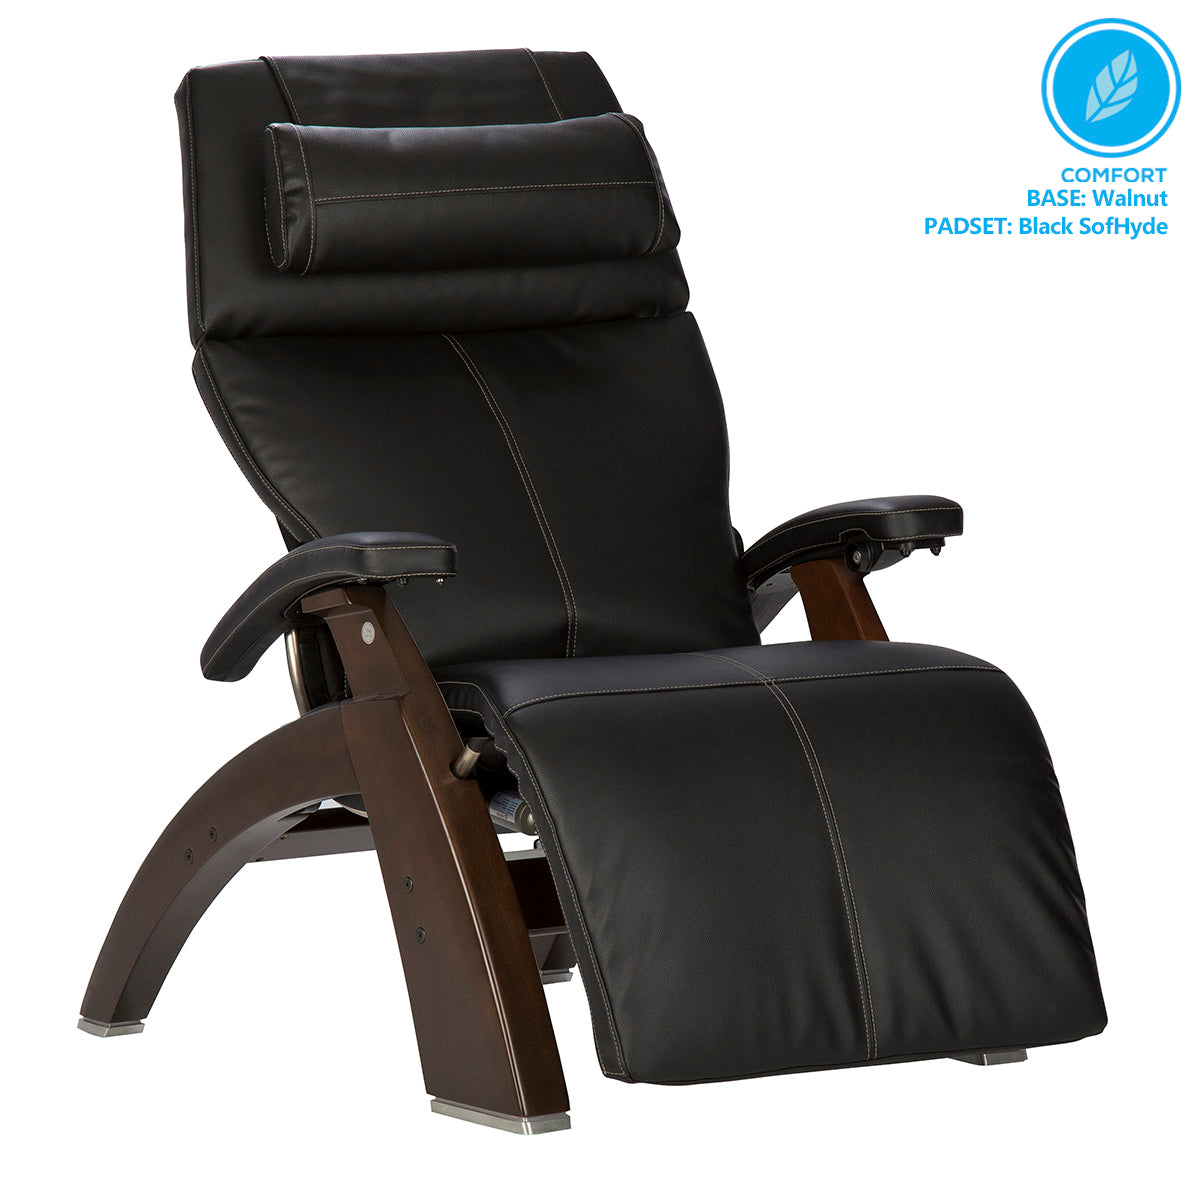 Human Touch Perfect Chair PC-610 Omni-Motion Classic Zero Gravity Chair - Dark Walnut Black SofHyde